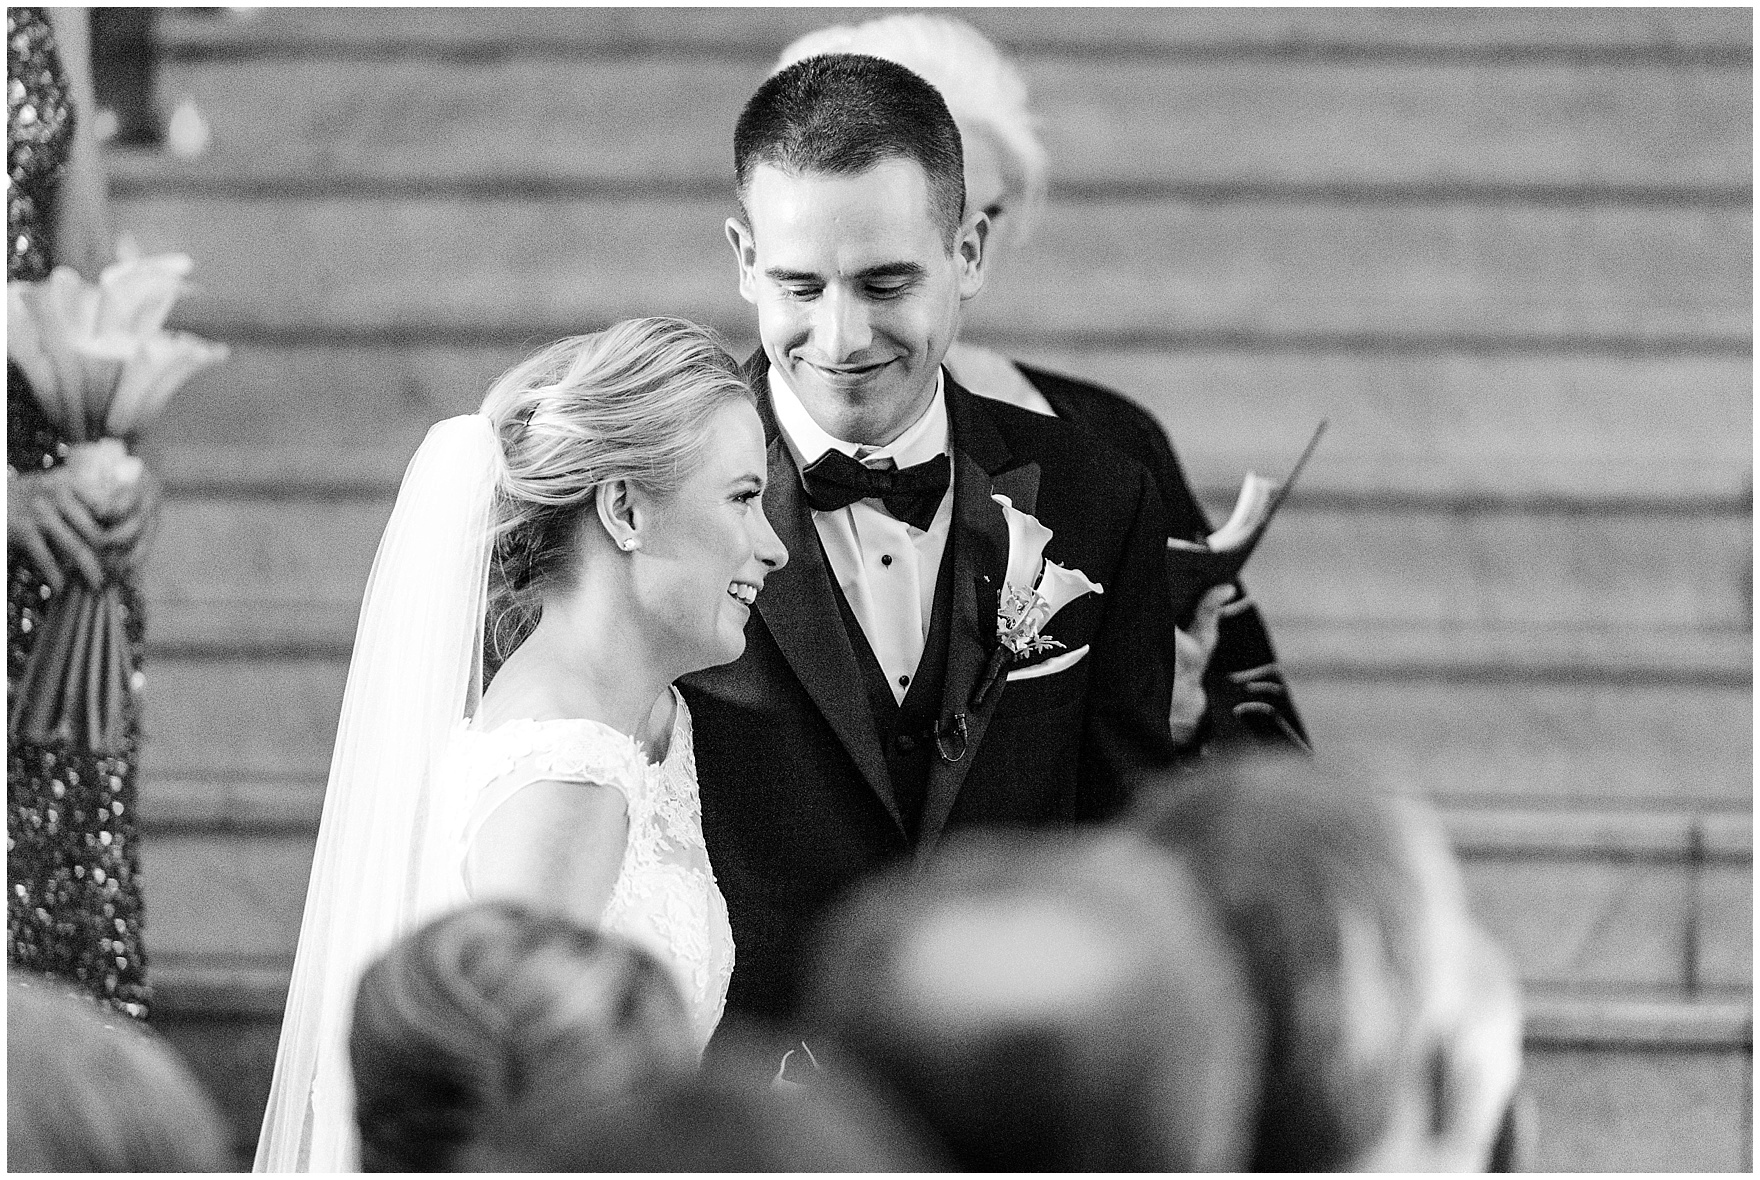 The bride and groom laugh during a Newberry Library Chicago wedding.